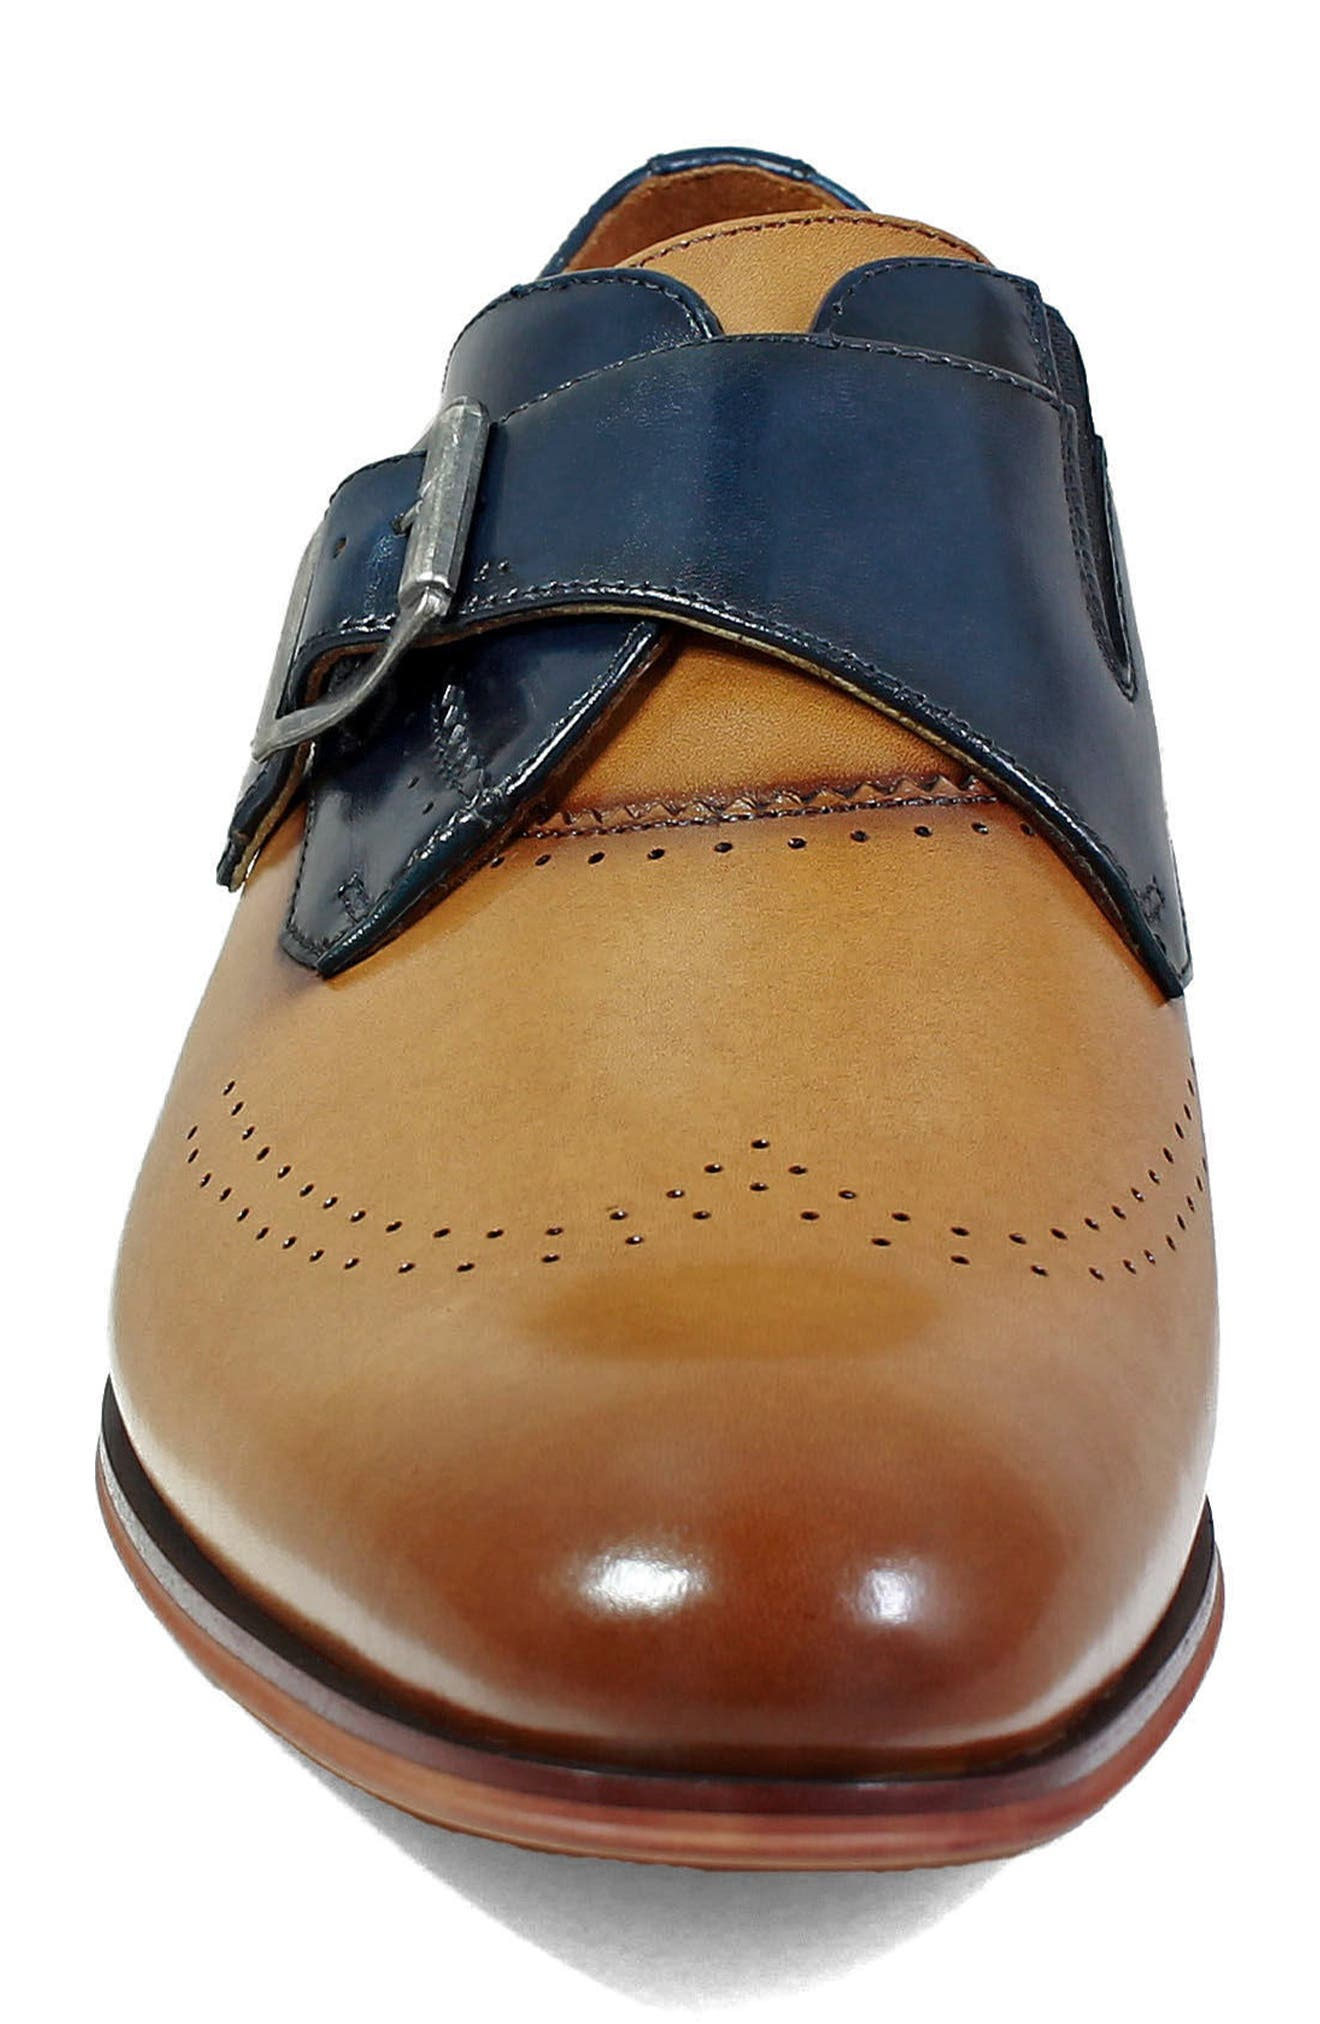 STACY ADAMS,                             Saxton Perforated Monk Strap Shoe,                             Alternate thumbnail 4, color,                             TAN/ NAVY LEATHER